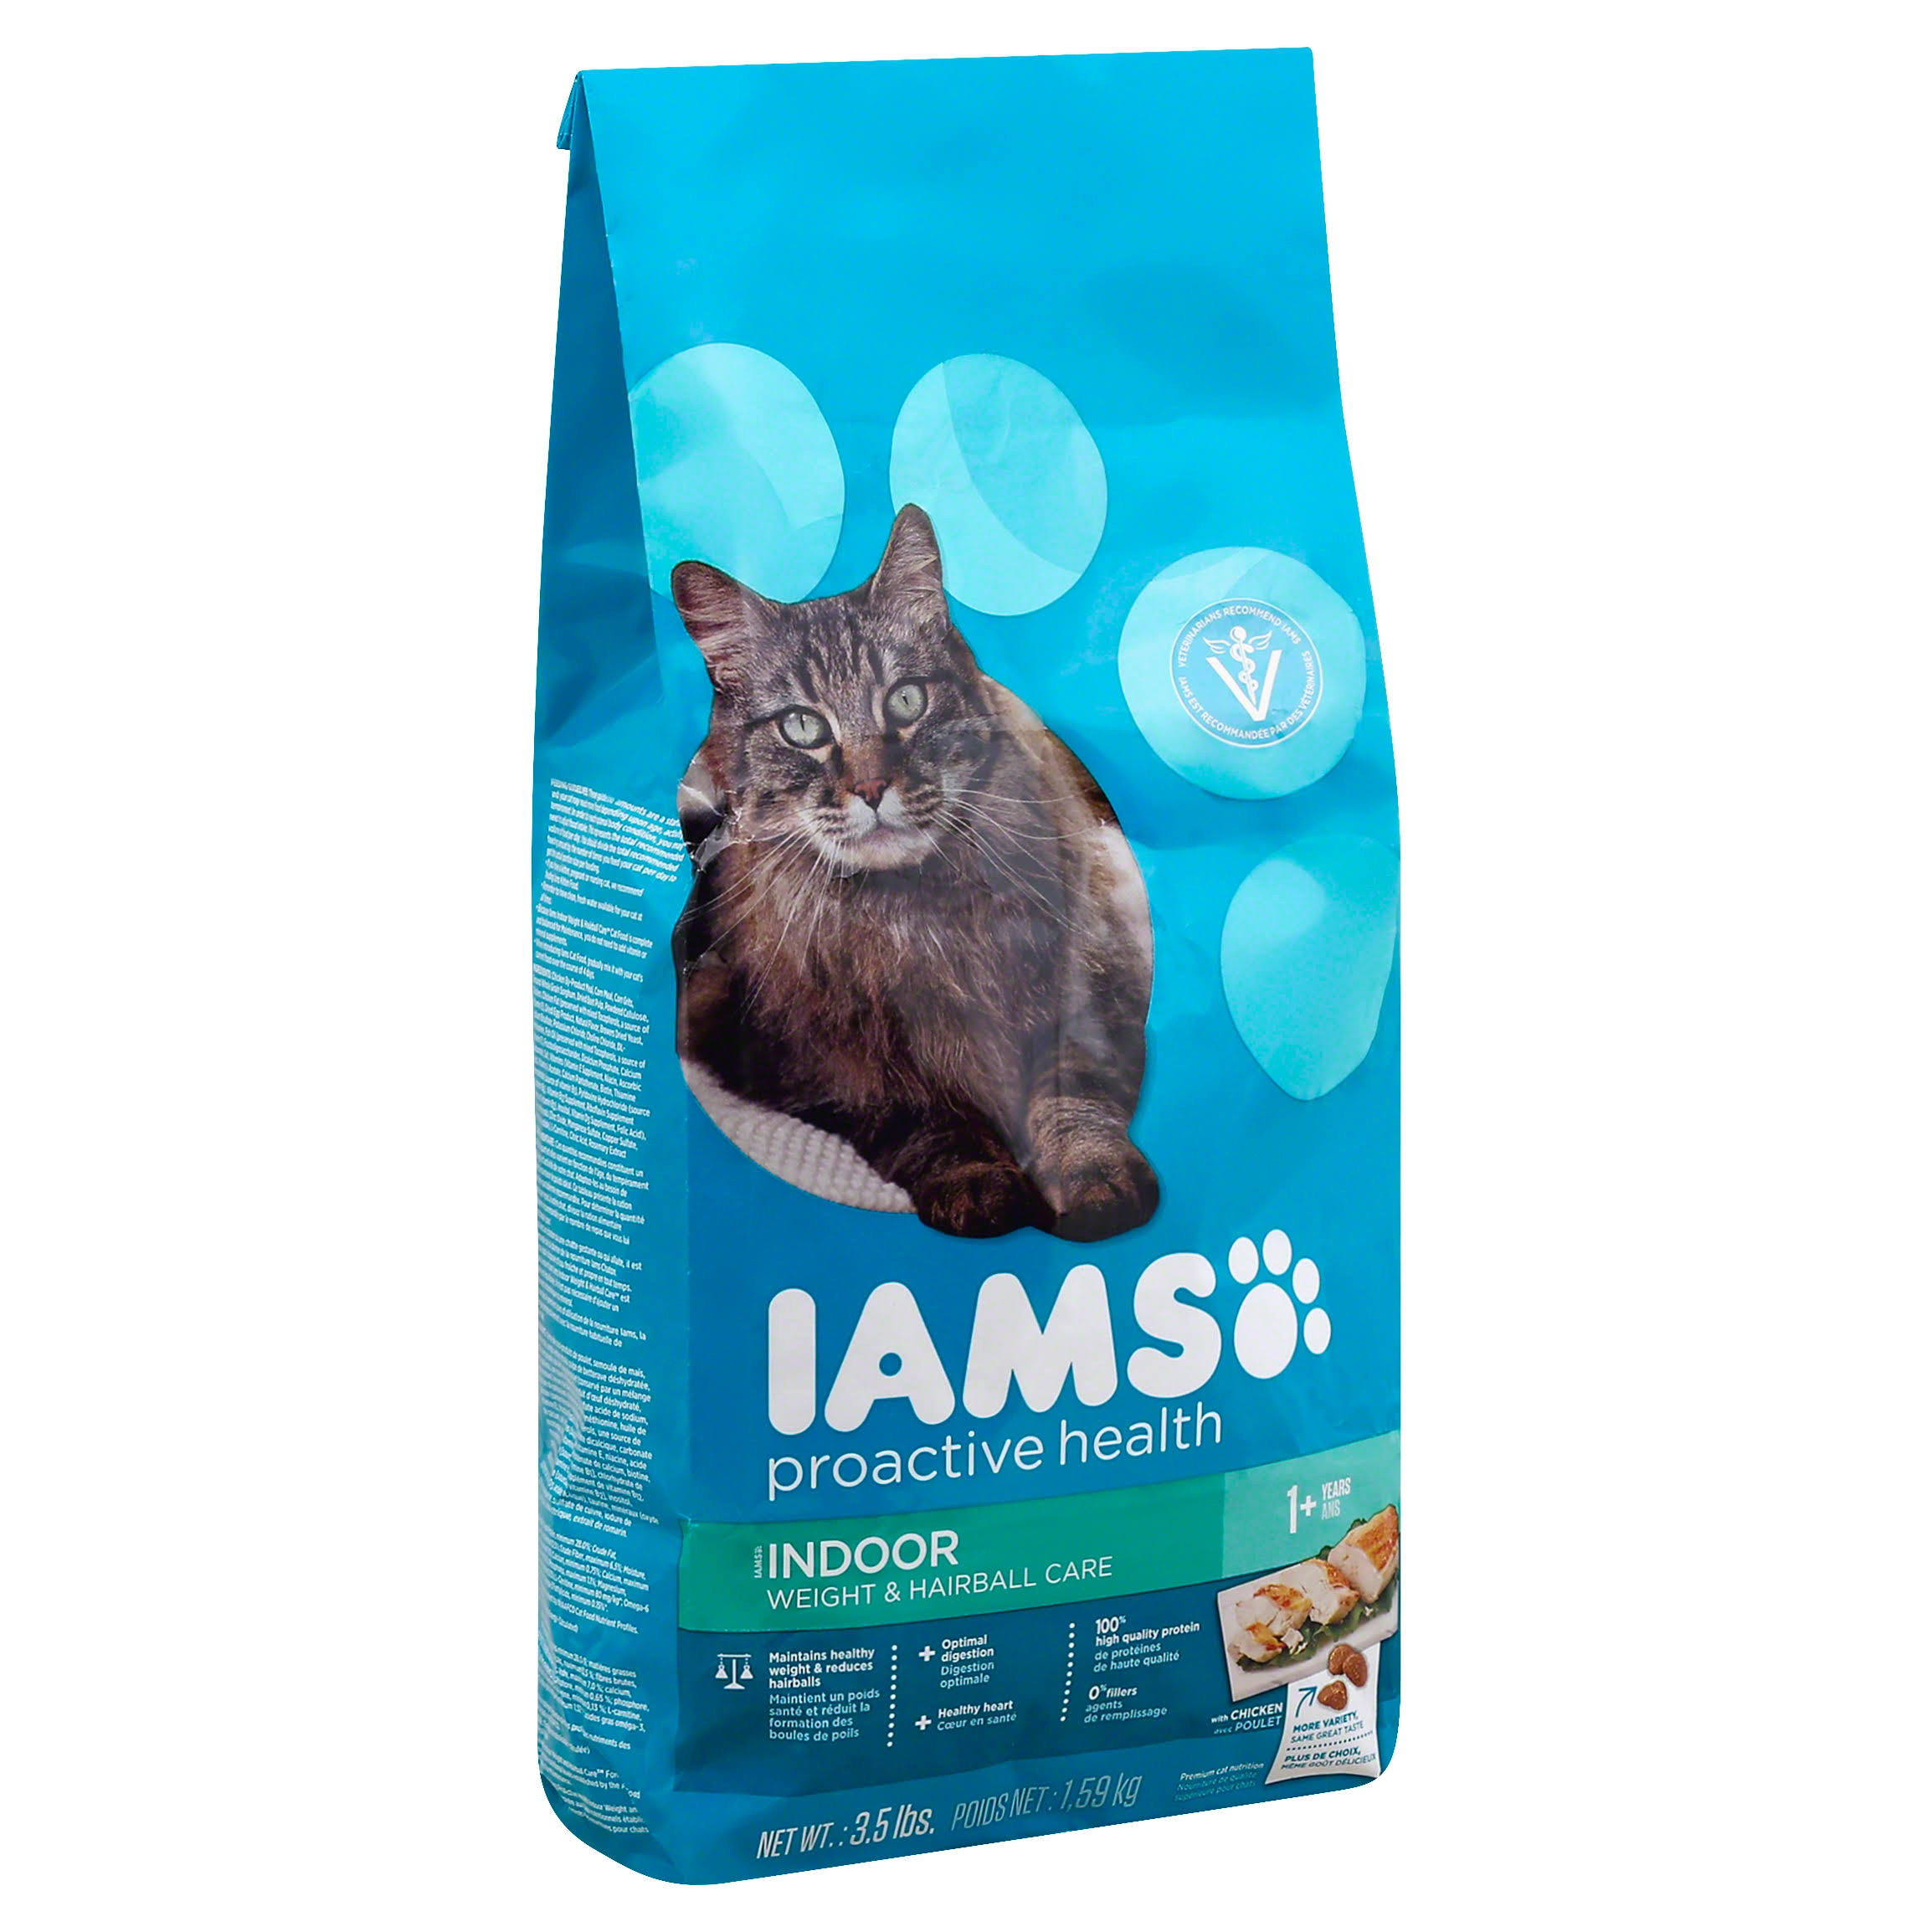 Iams Proactive Health Indoor Weight & Hairball Care Dry Cat Food - 3.5